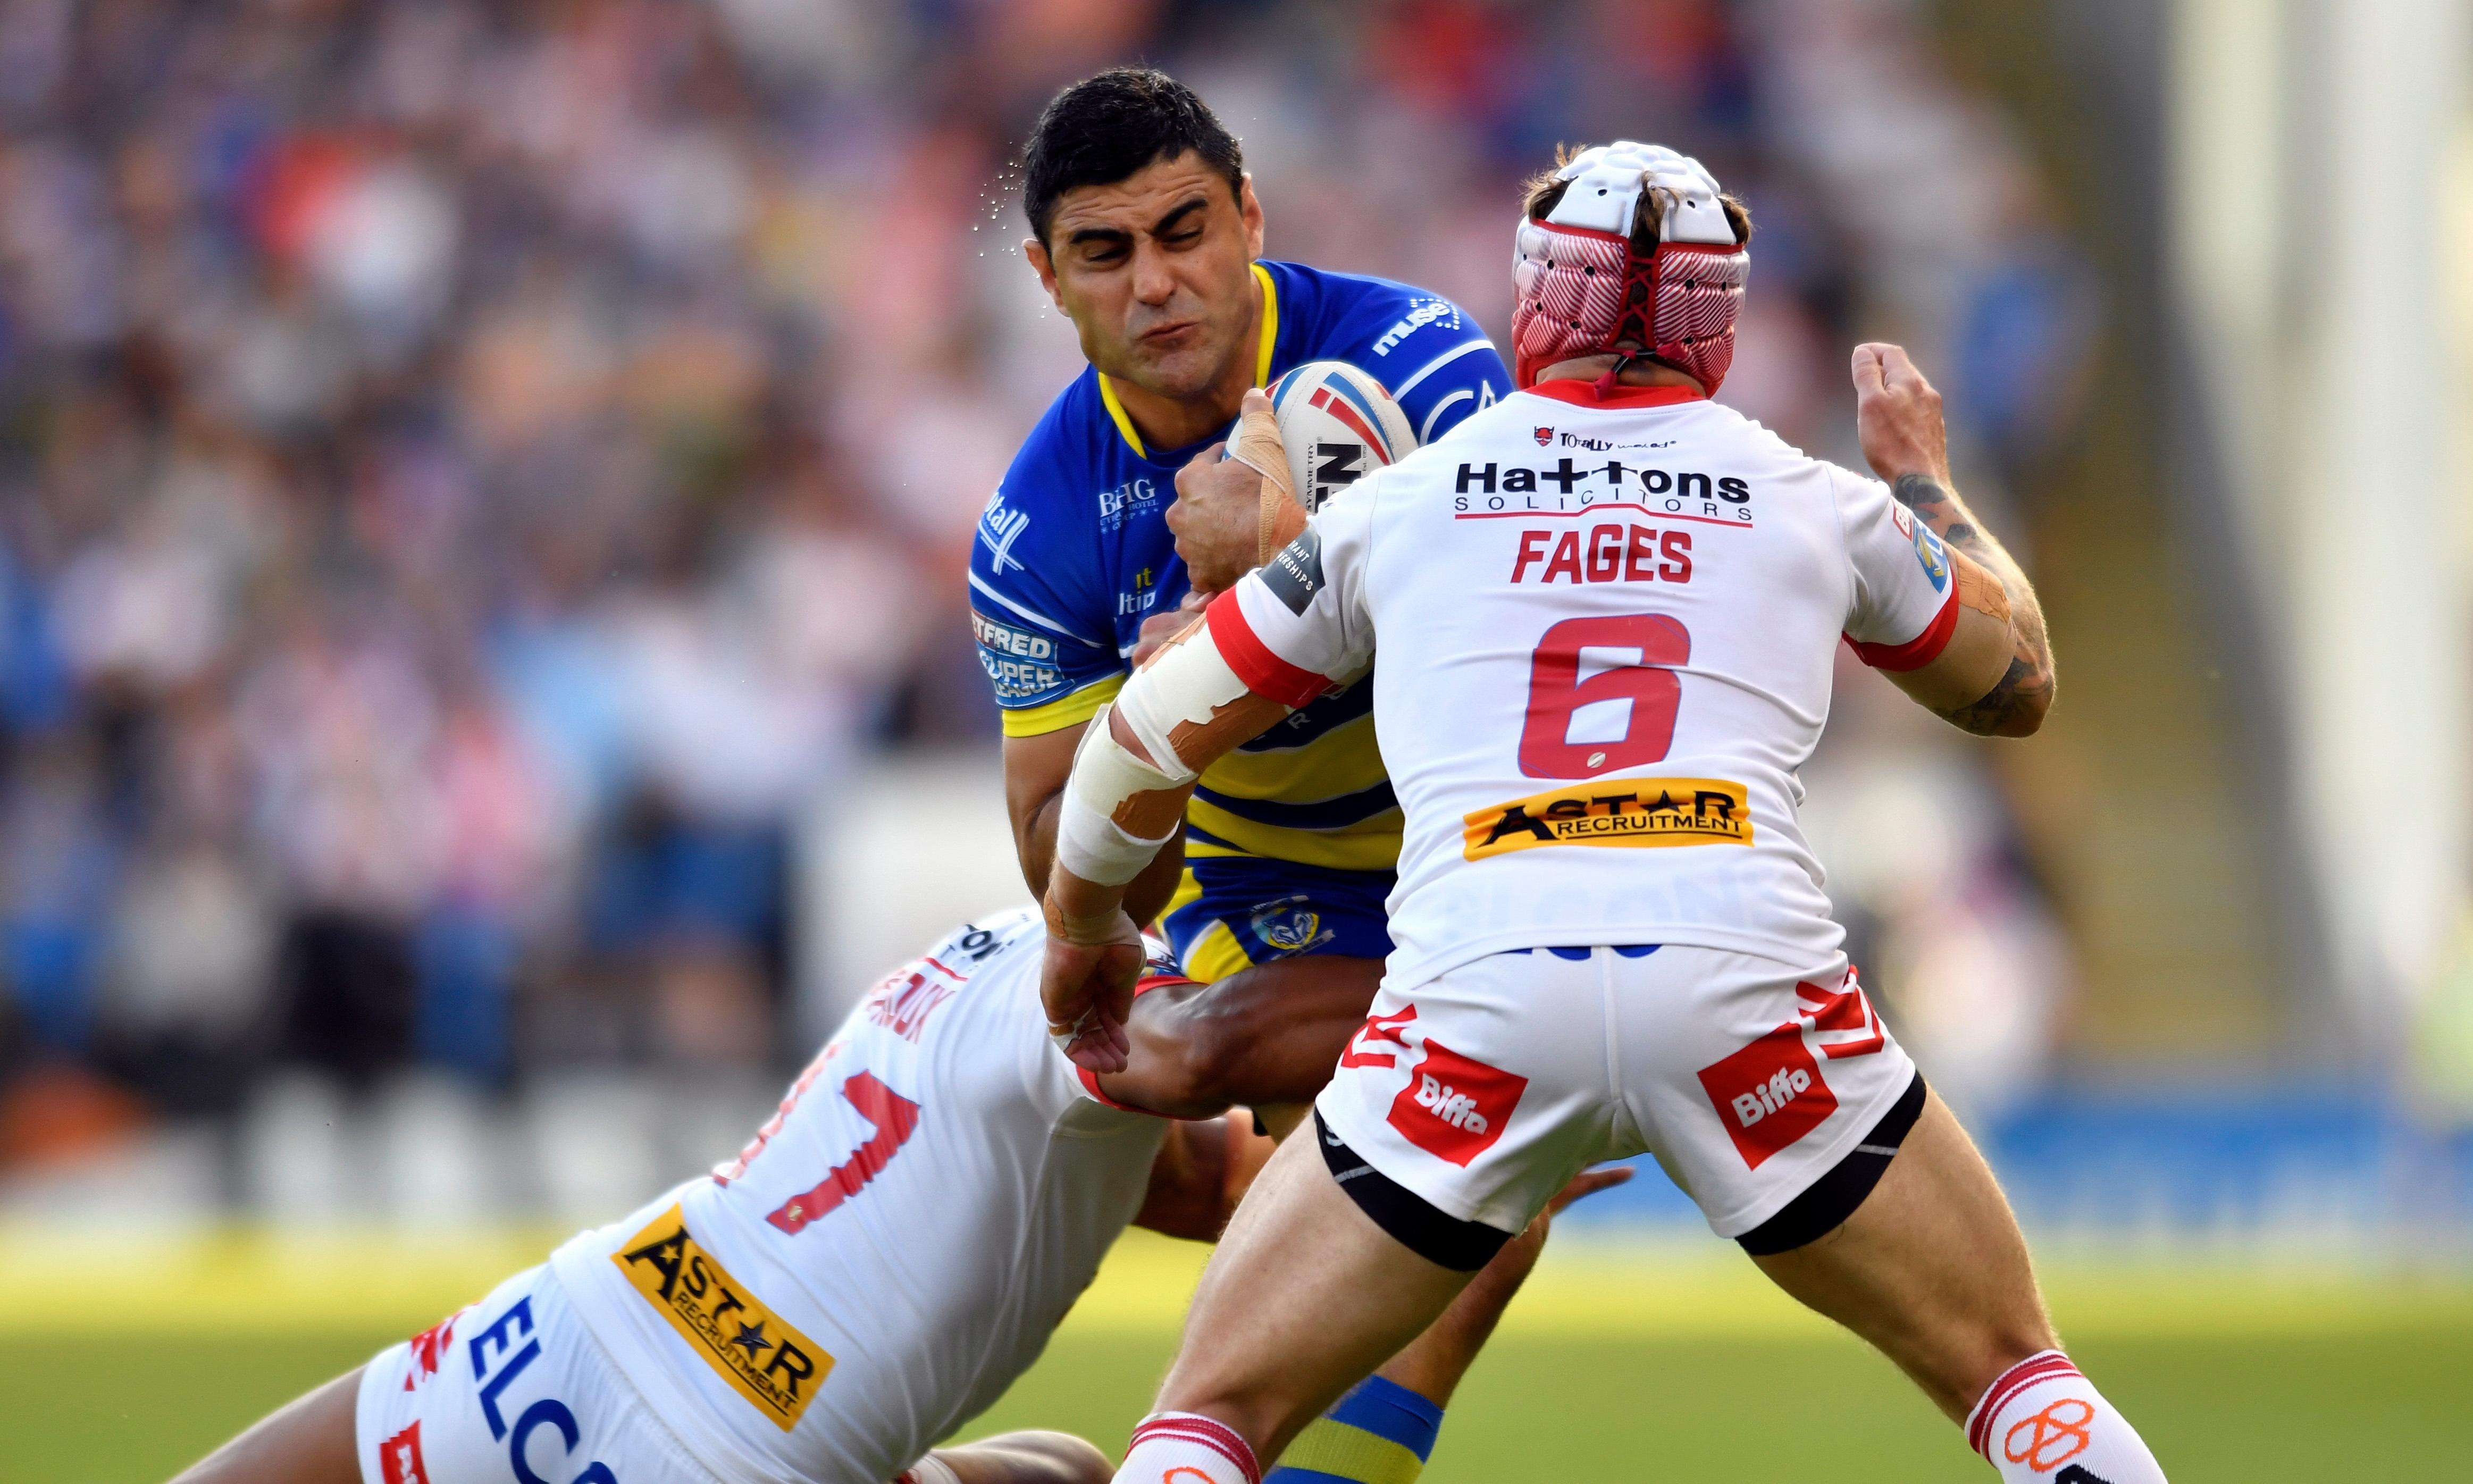 St Helens extend lead at top with comeback to win at Warrington